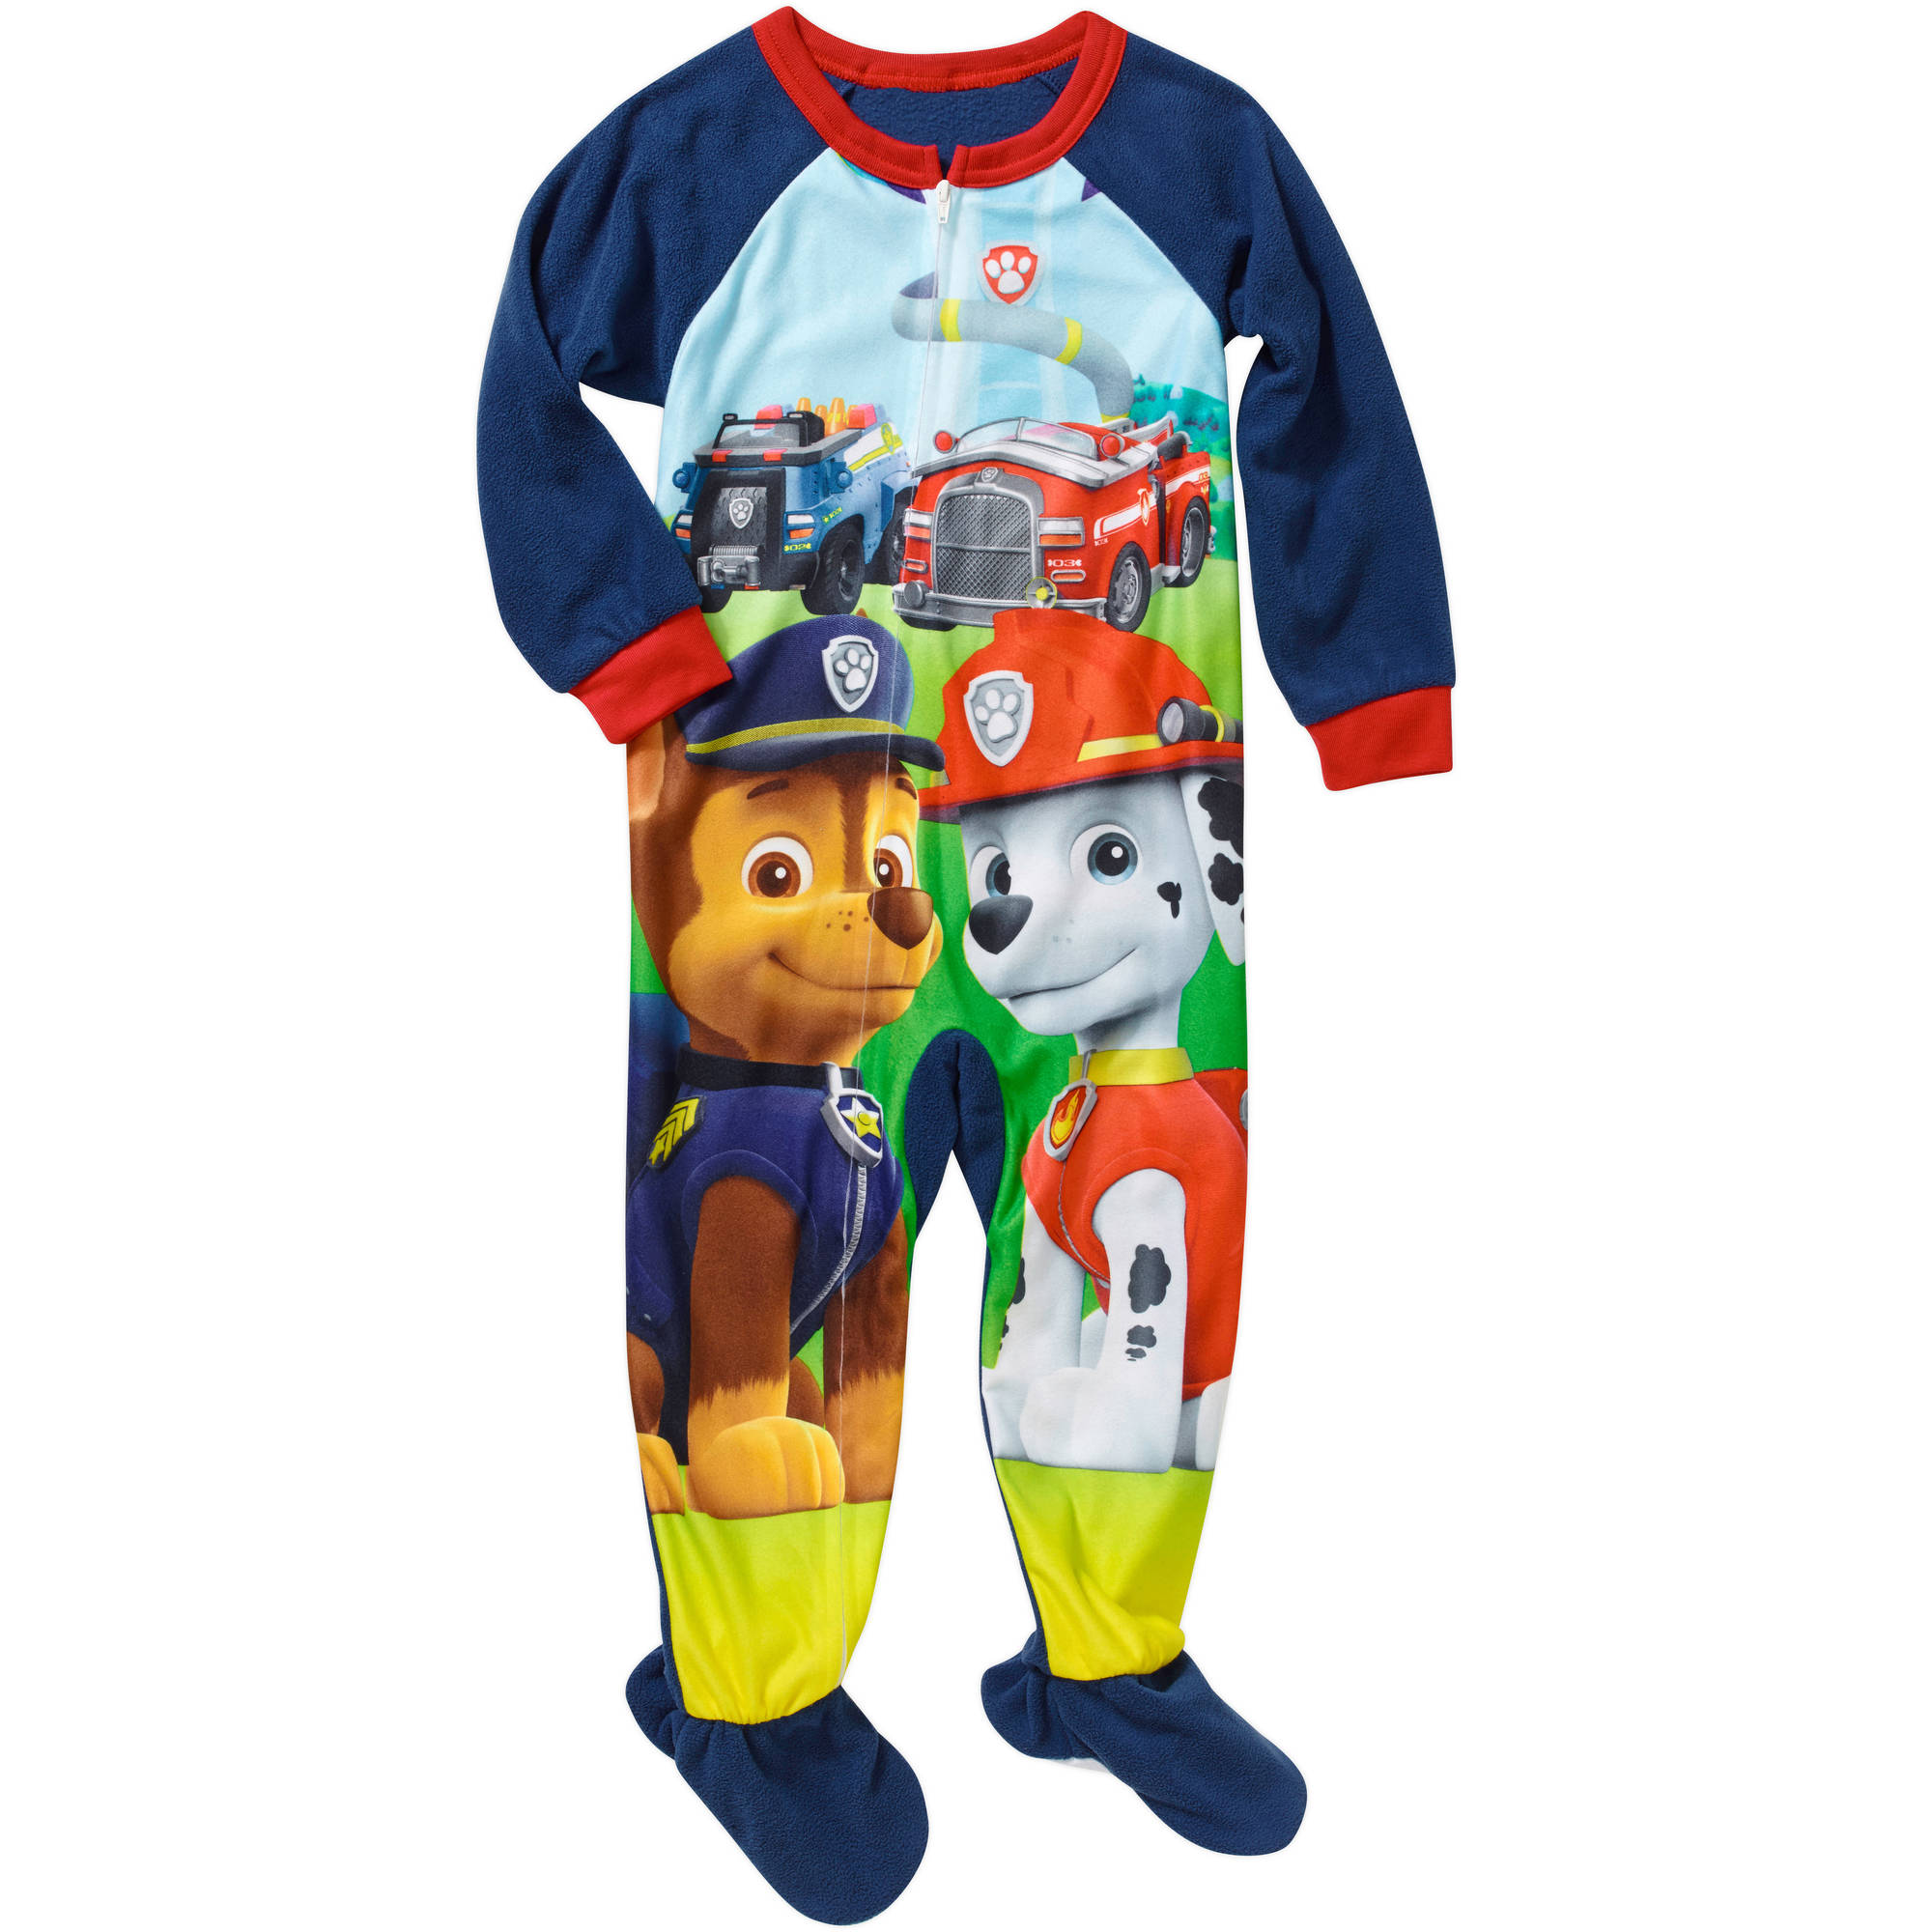 Boys Footed Pajamas Breeze Clothing